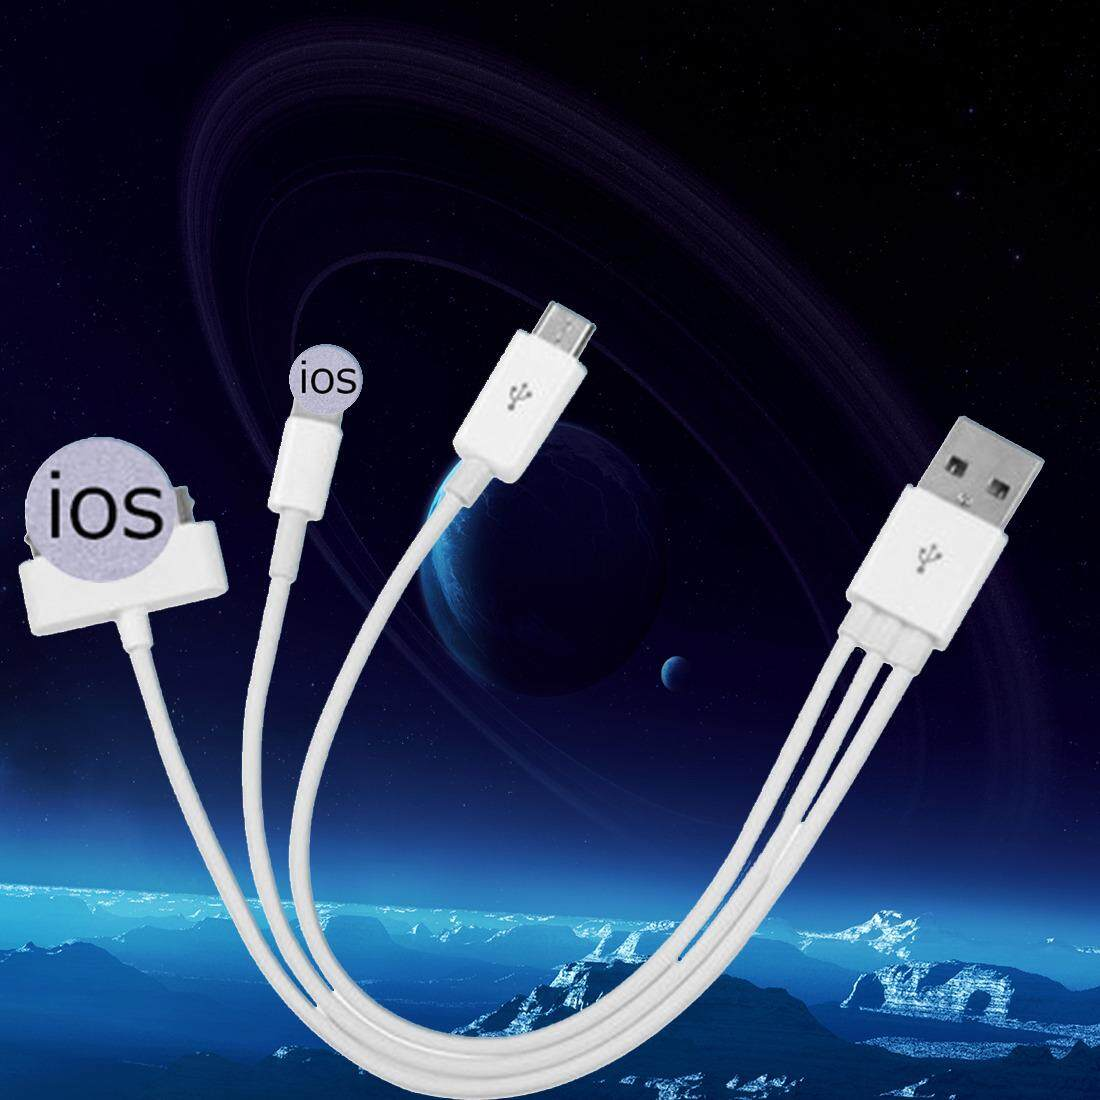 3In1 USB Pengisian Kabel untuk Iphone Ipad Udara LG G3 Htc Satu M8 Kabel Data Multi-Internasional